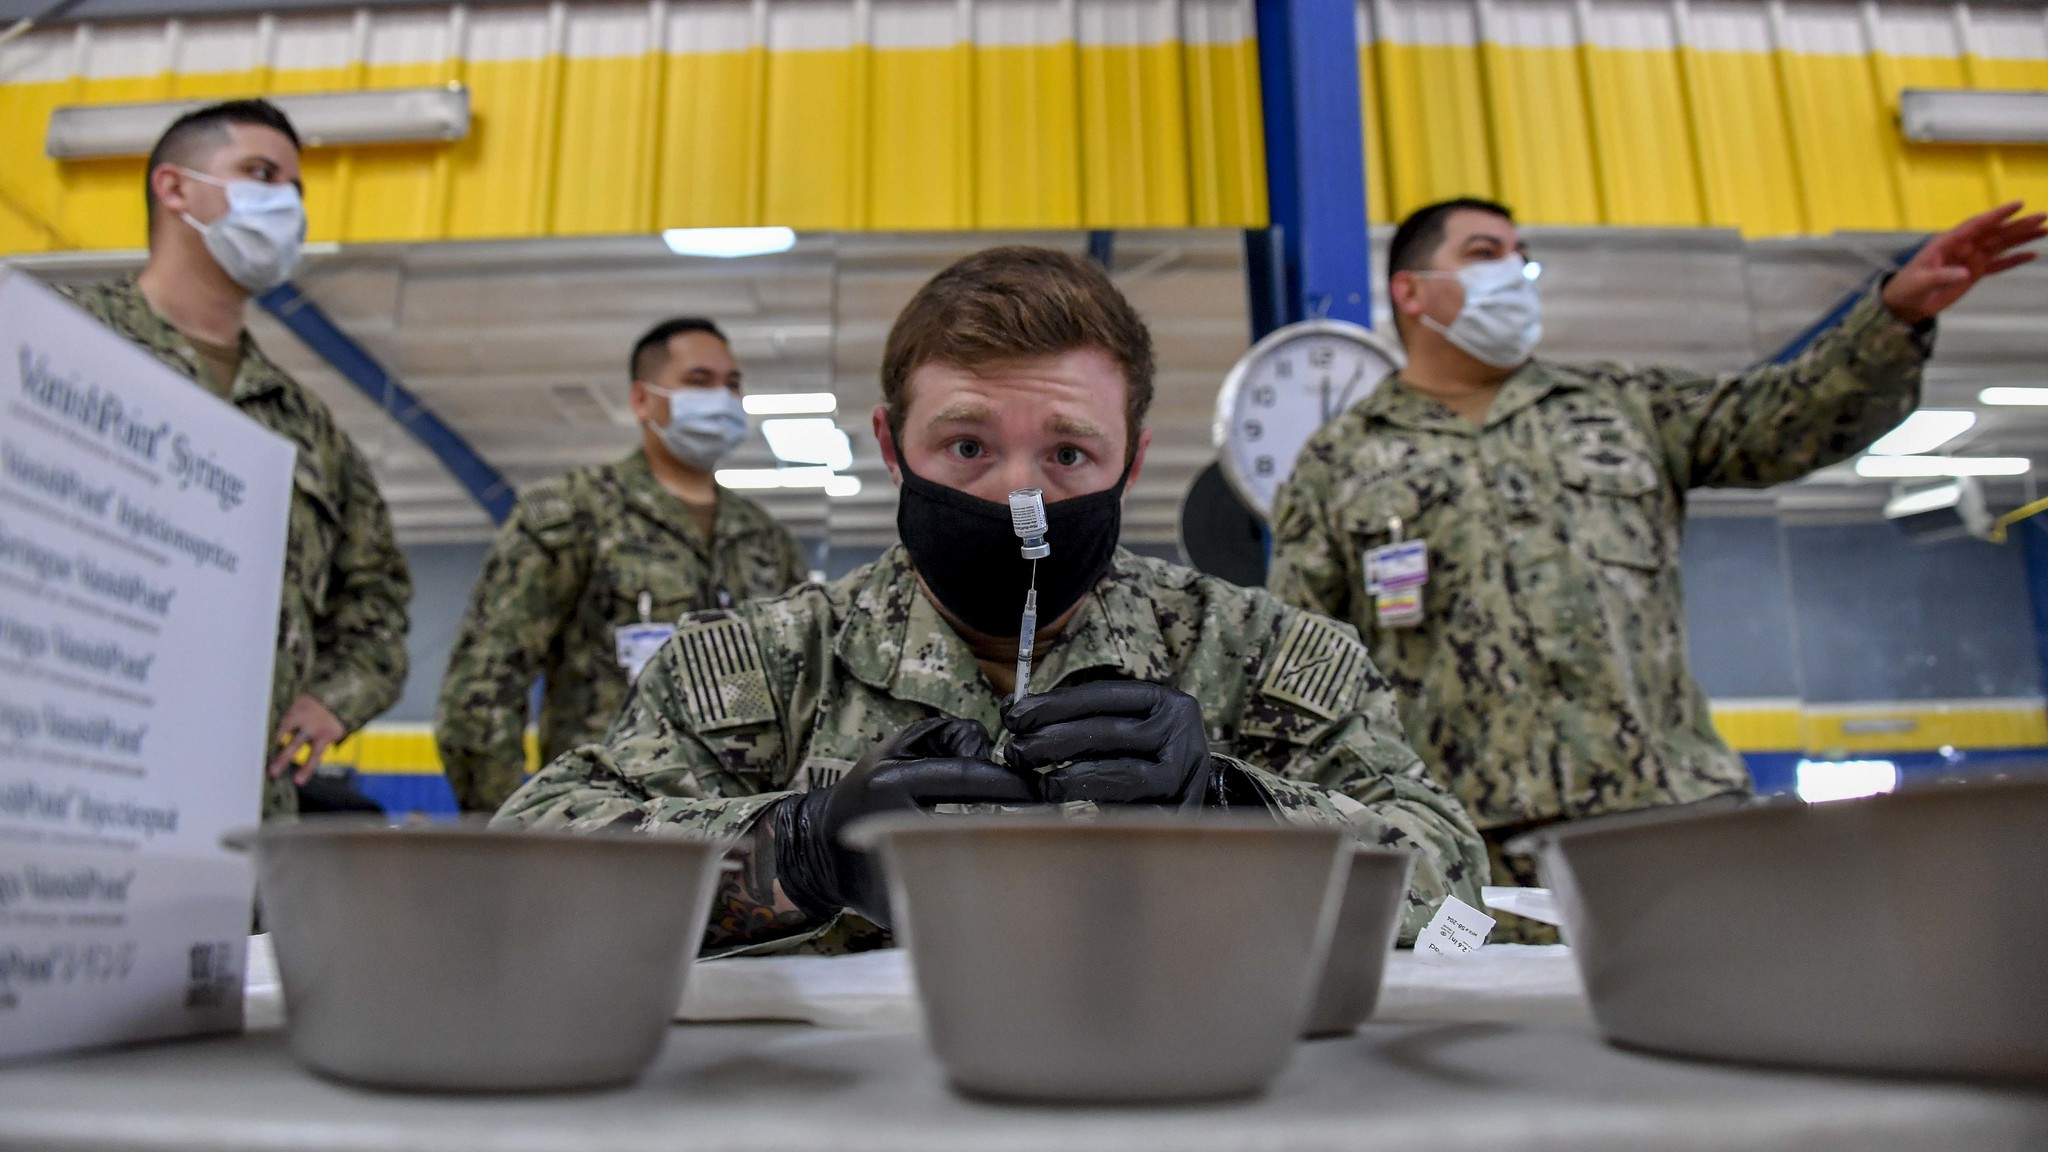 Hospital Corpsman 2nd Class Shane Miller prepares COVID-19 vaccines at the Naval Base San Diego fitness center on Jan. 8, 2020, as part of Operation Warp Speed. (MC1 Julio Rivera/Navy)